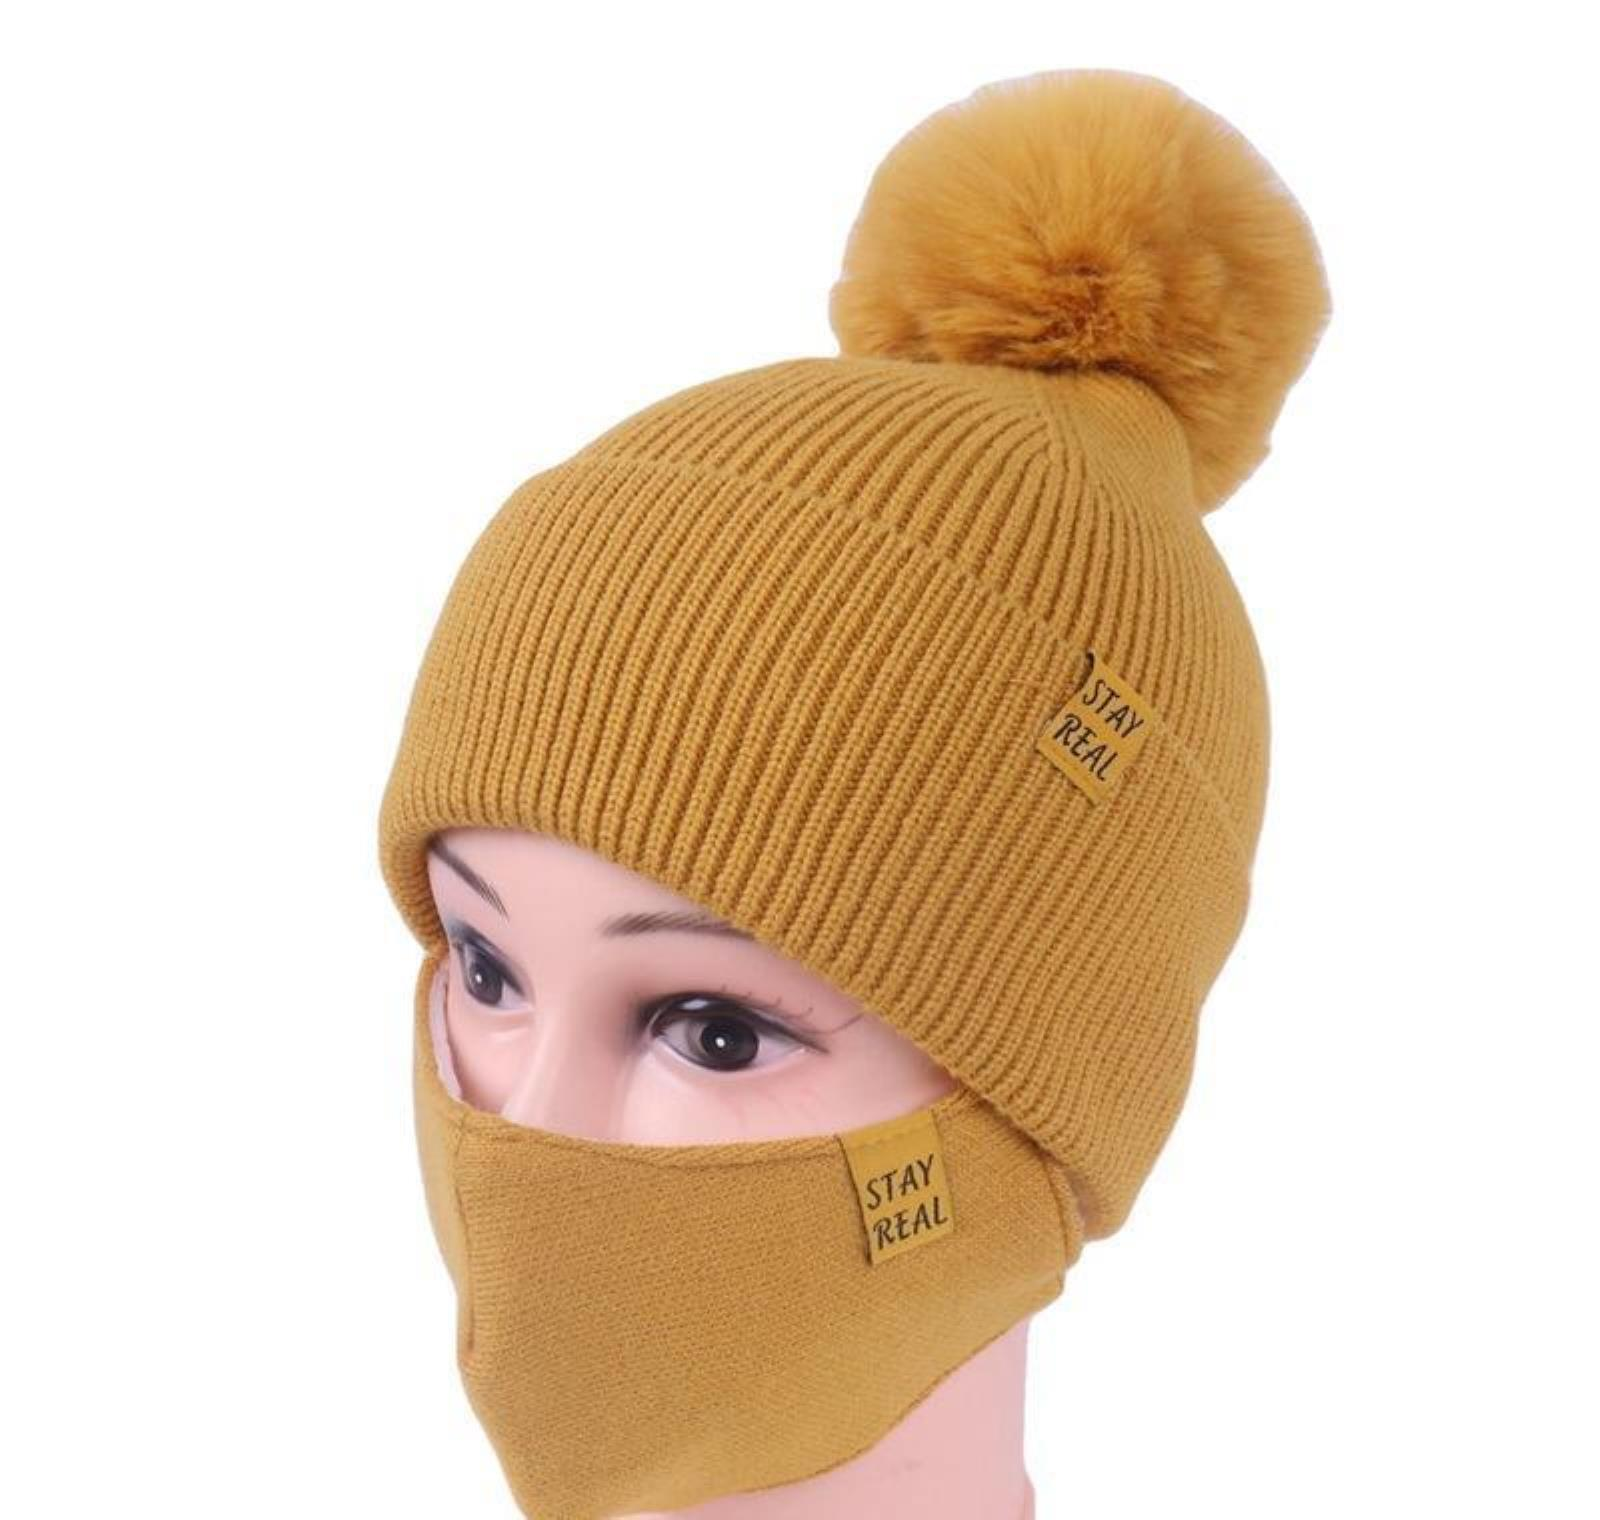 Dhl Shipping Womens Girls Knit Beanie Cap With Face Mask Set Soft Warm Lined Winter Ski Pompom Hat Outdoor bbyczu xmhyard